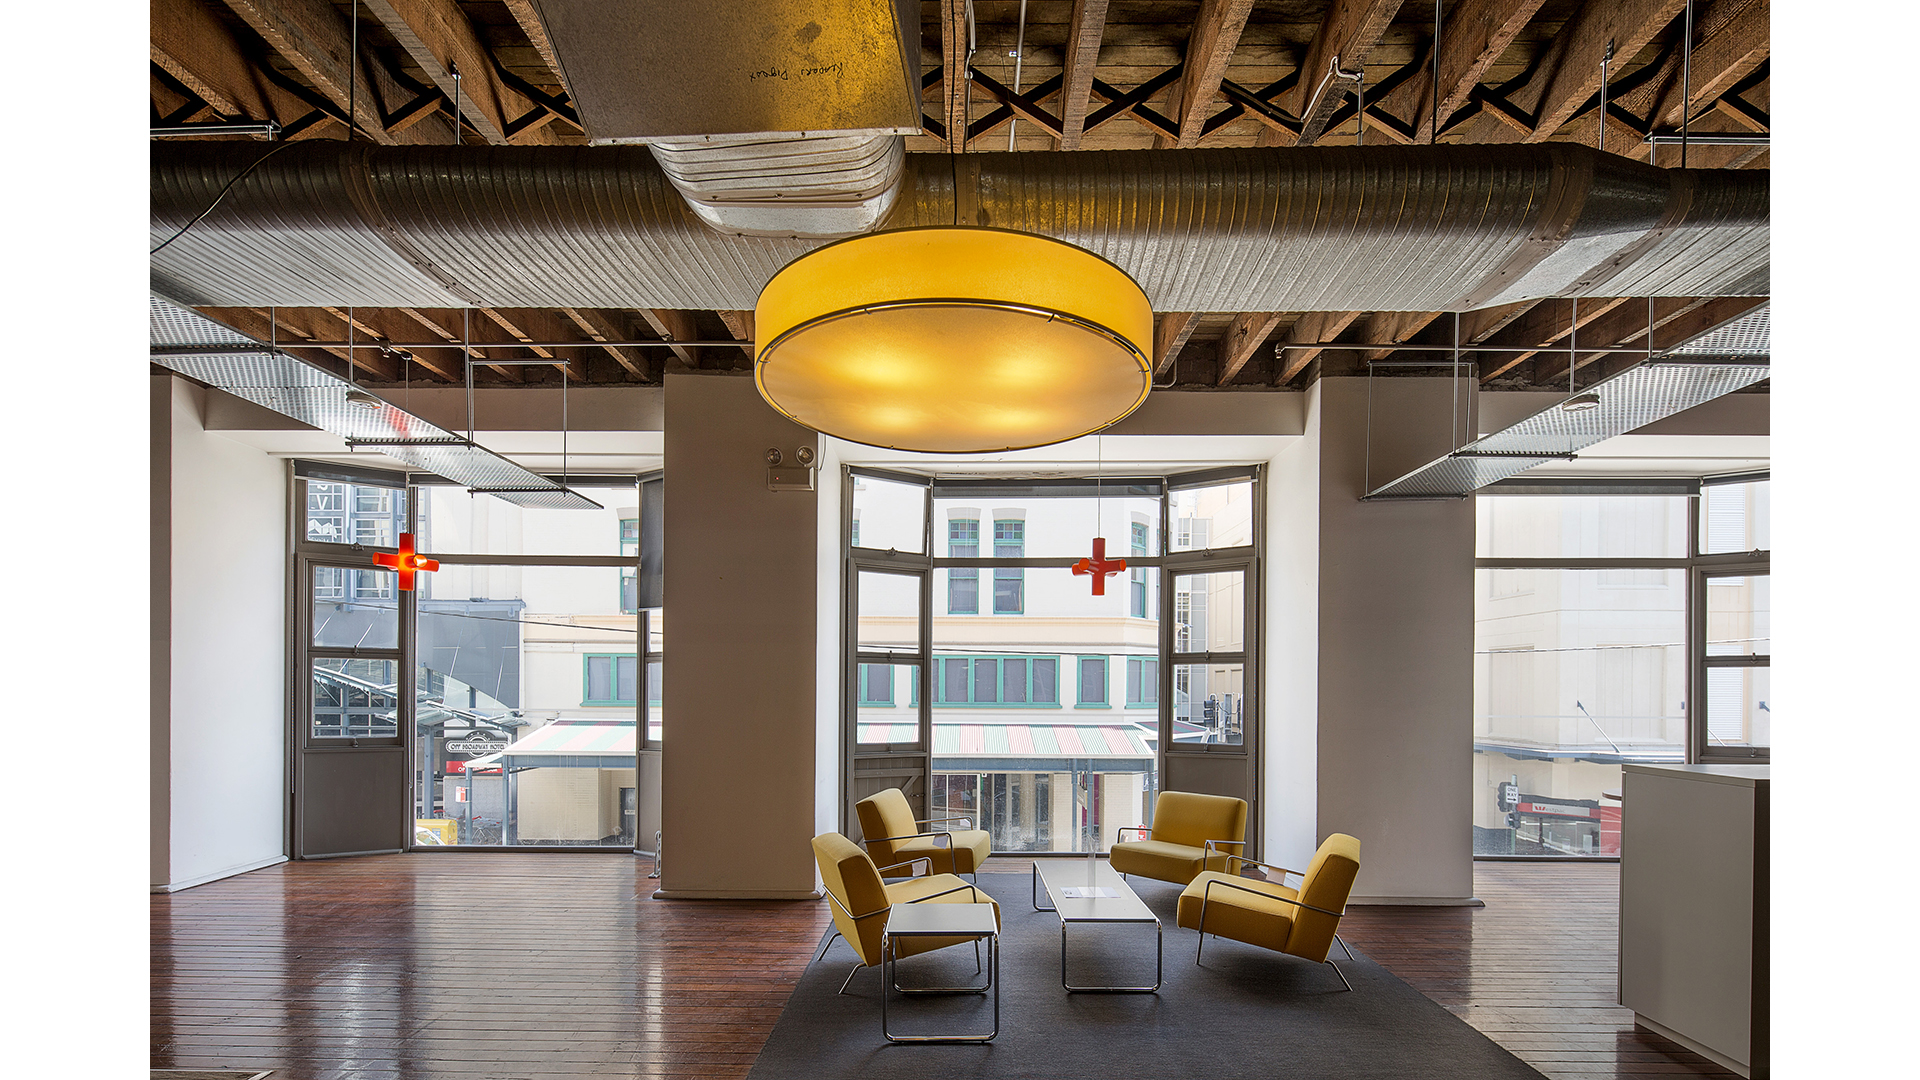 a modern office space with a big yellow lamp and chairs